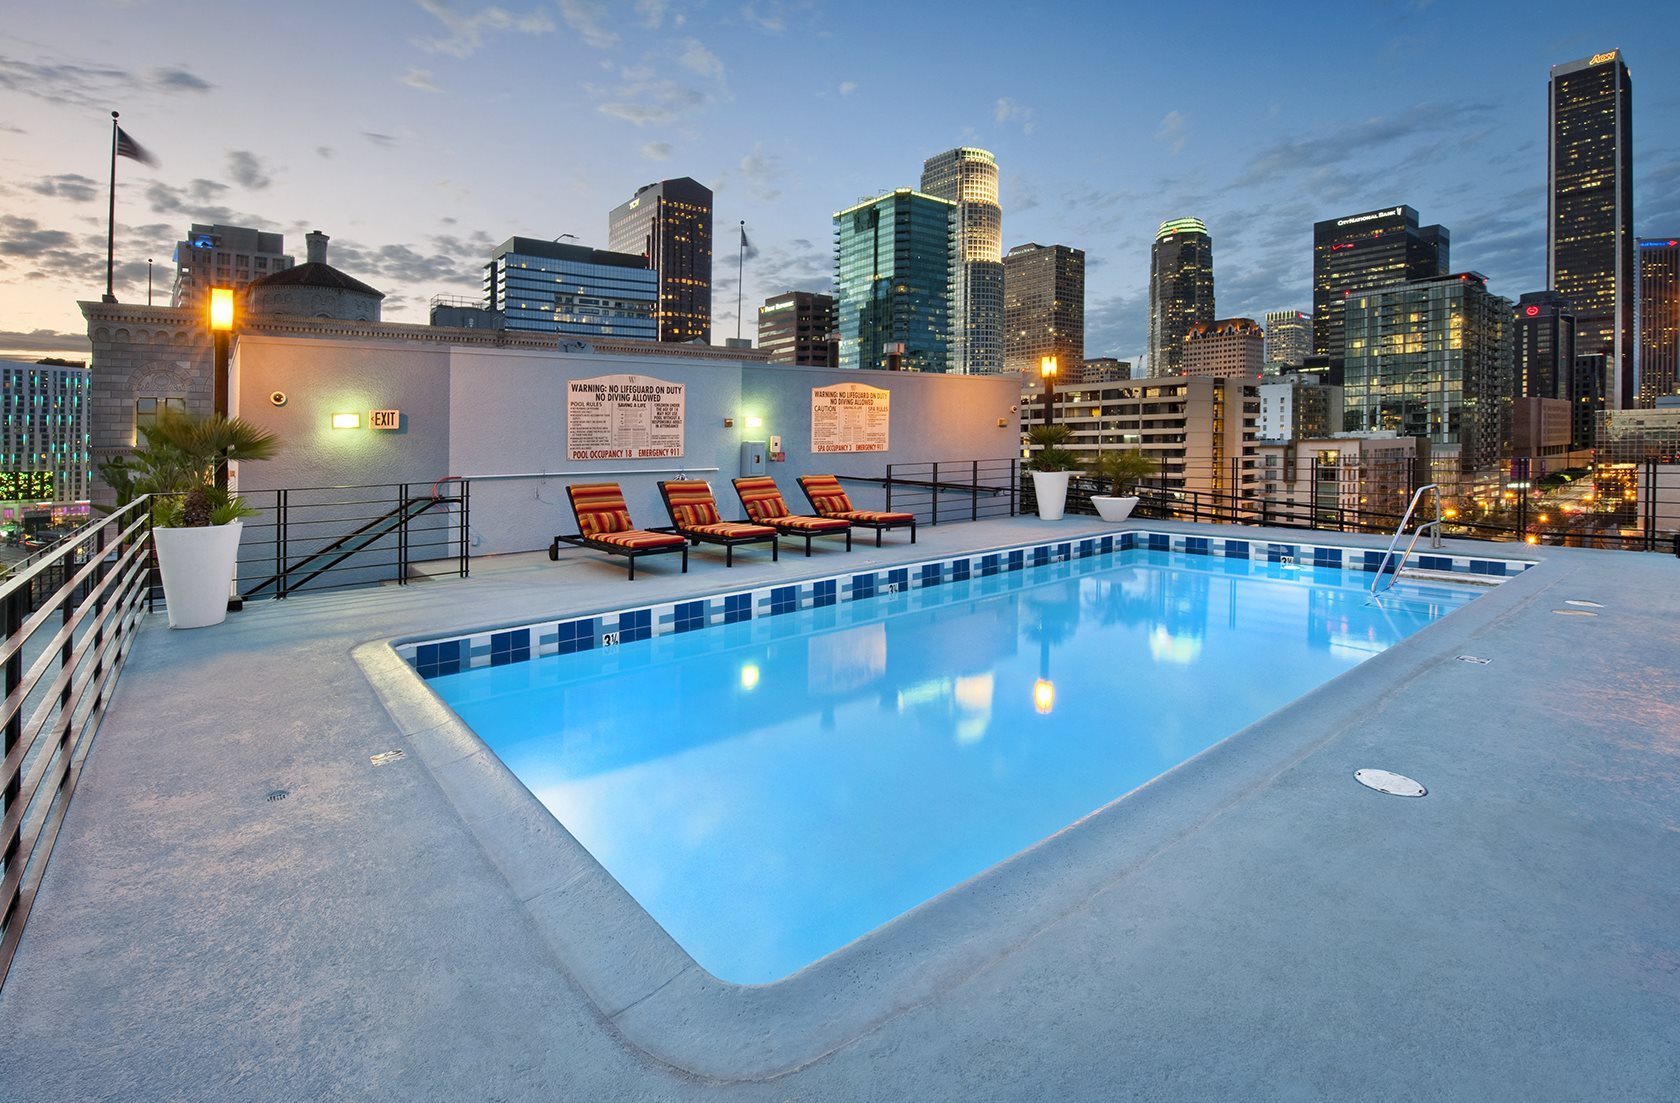 Rooftop Sundeck With Pool And Spa At Renaissance Tower 501 W Olympic Boulevard